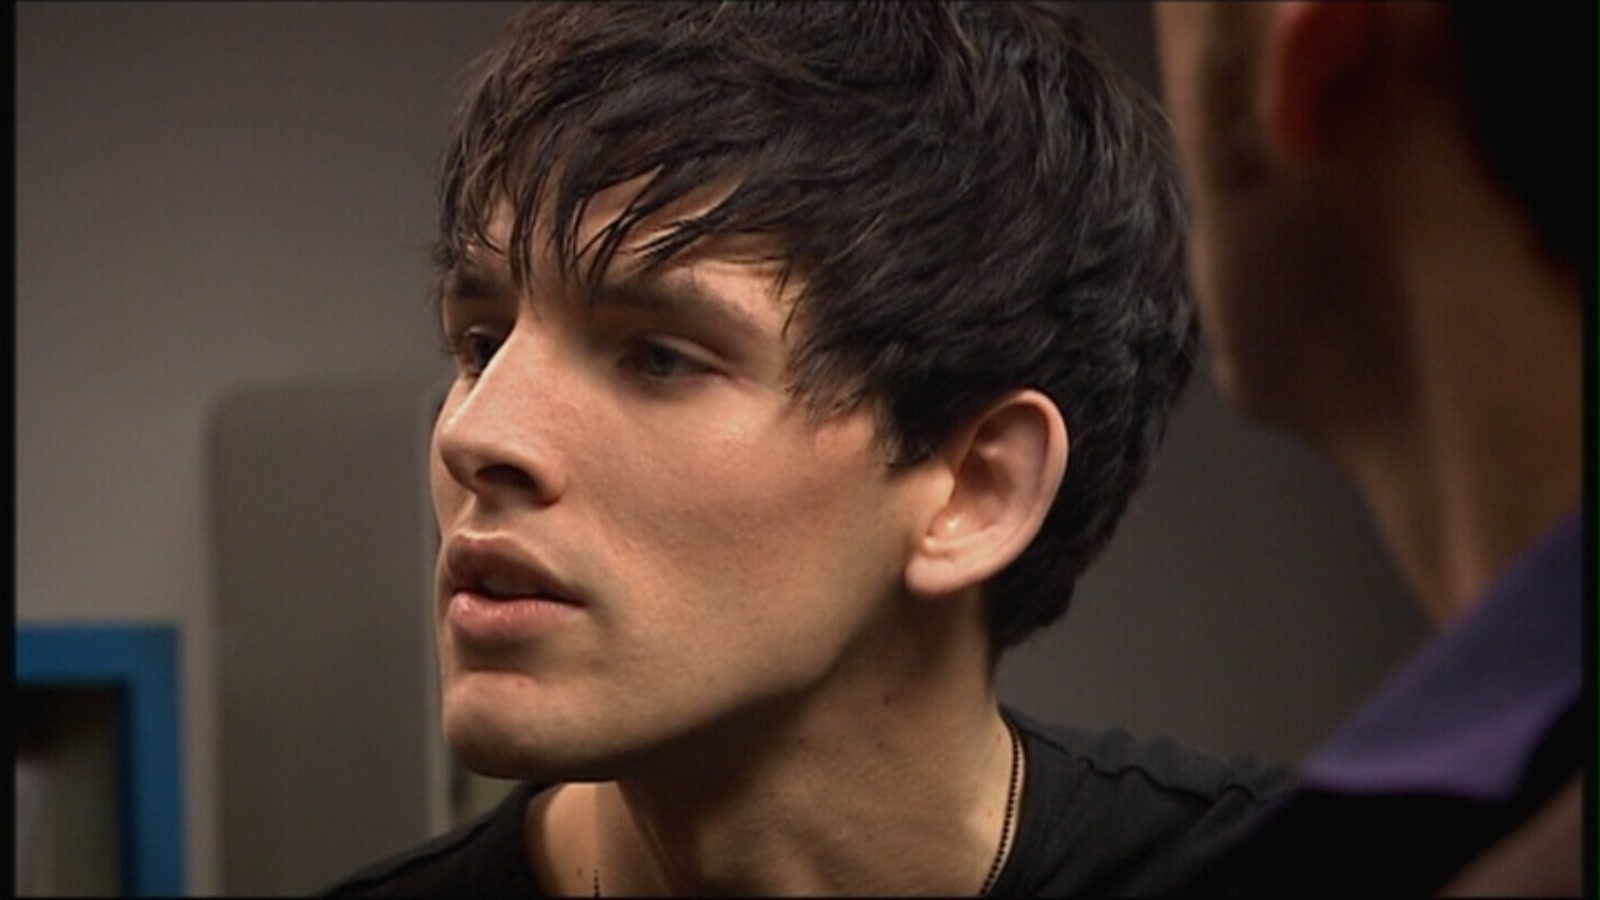 Doctor Who Colin Morgan Image 9919977 Fanpop